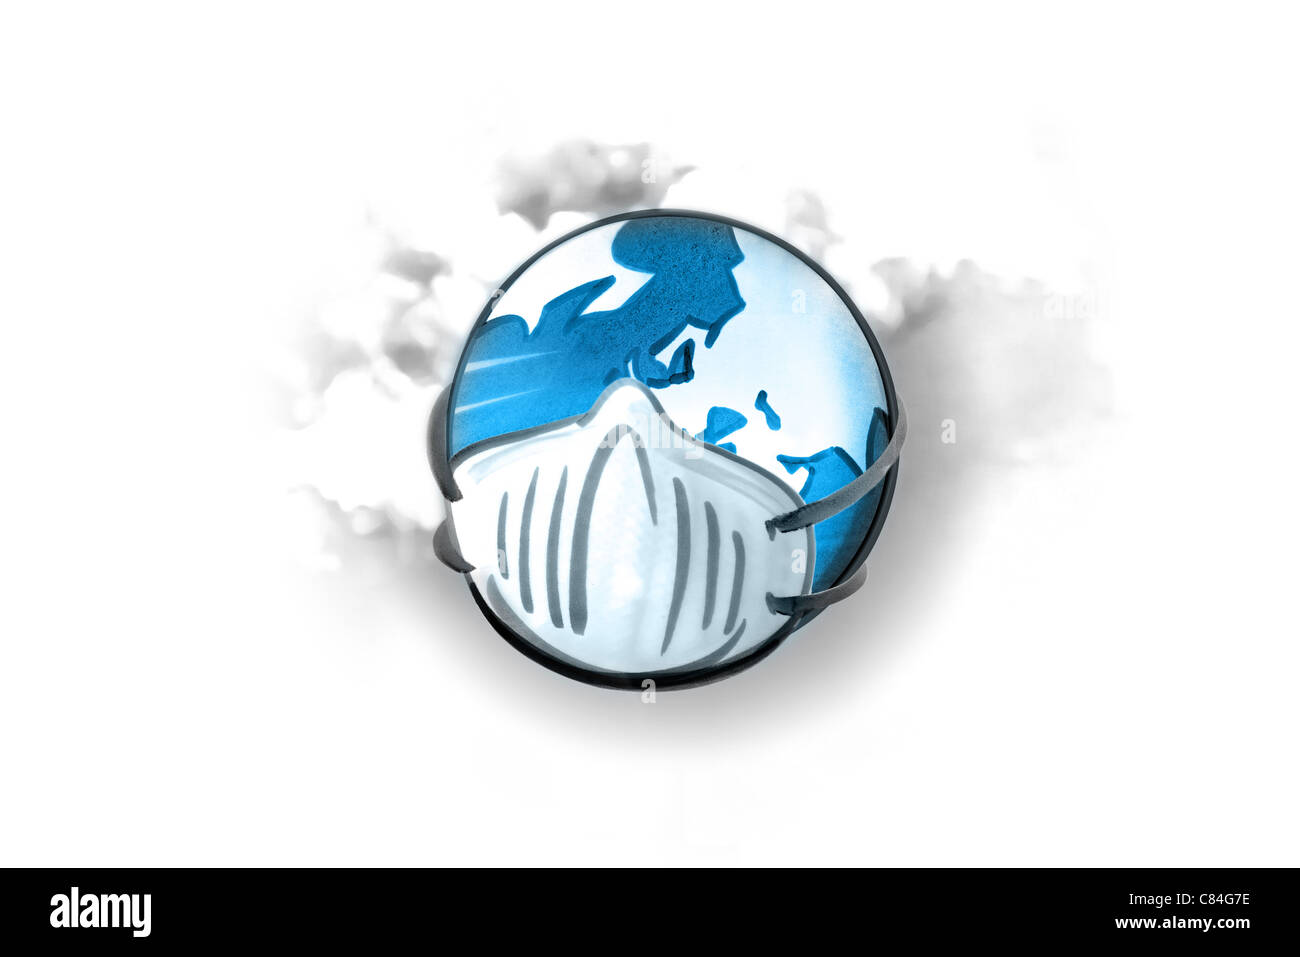 Earth with mask, smoke in background Stock Photo